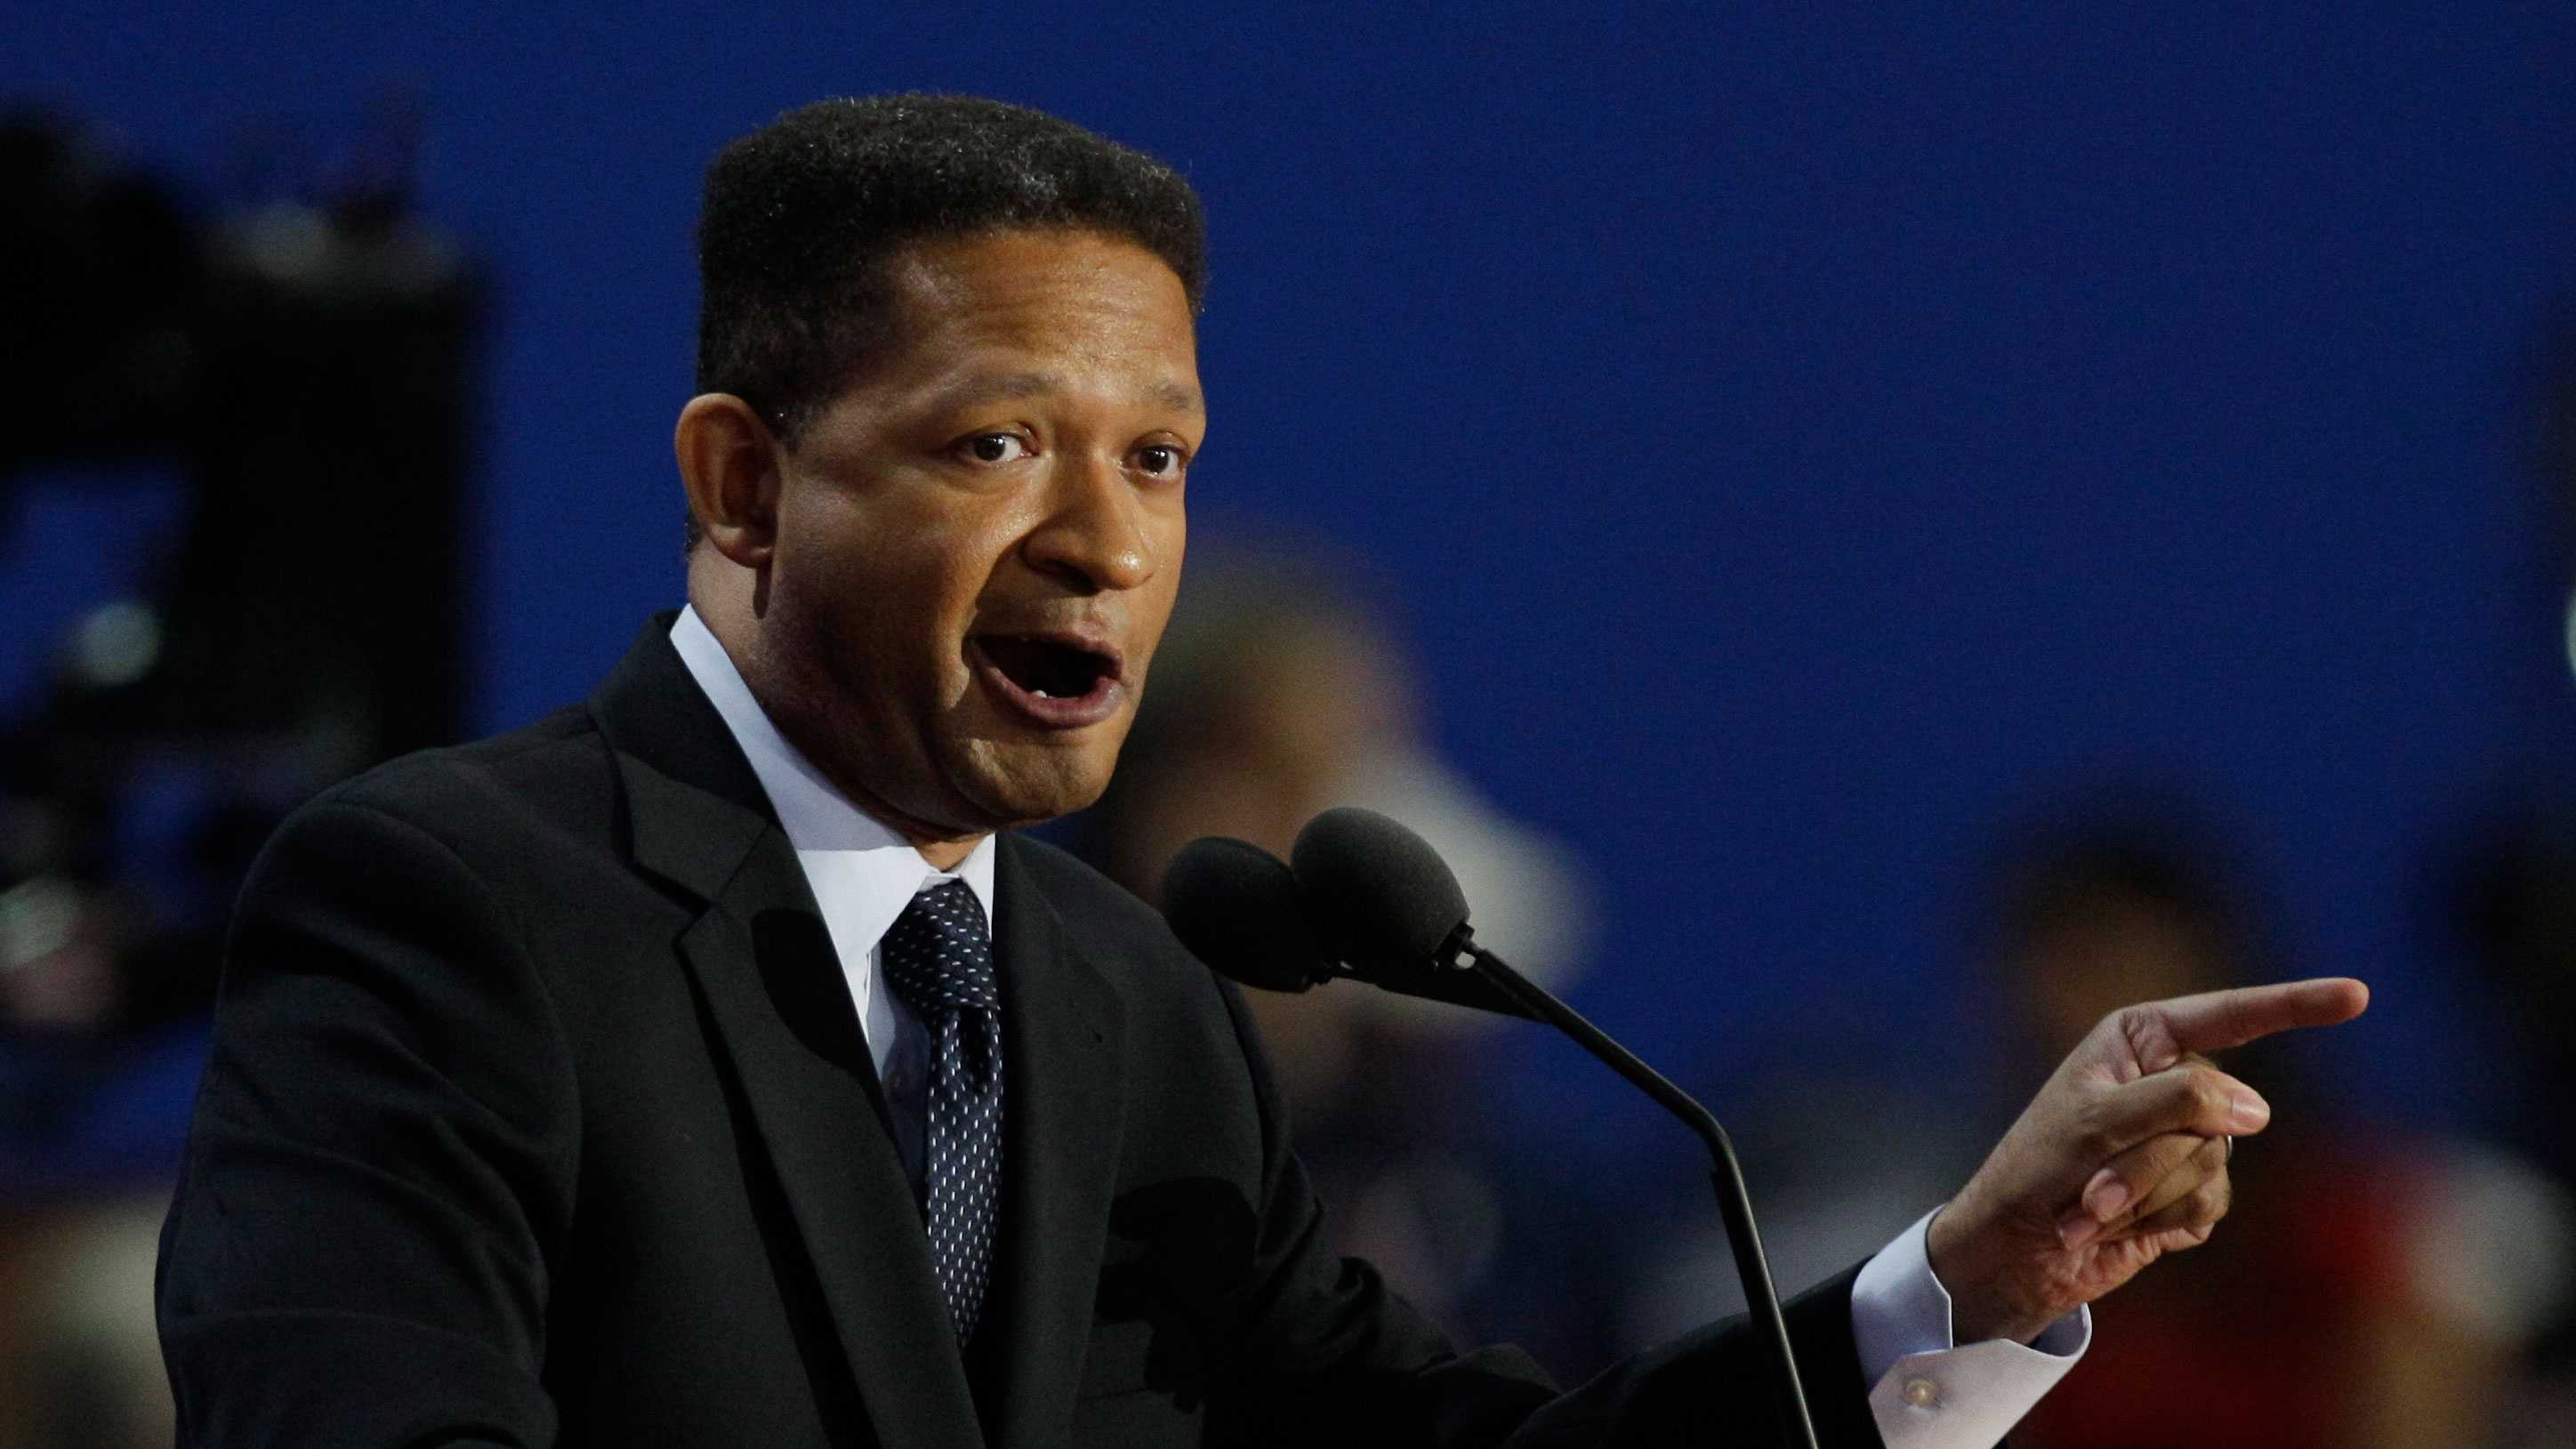 Former Representative Artur Davis speaks to delegates during the Republican National Convention in Tampa, Fla., on Tuesday, Aug. 28, 2012.